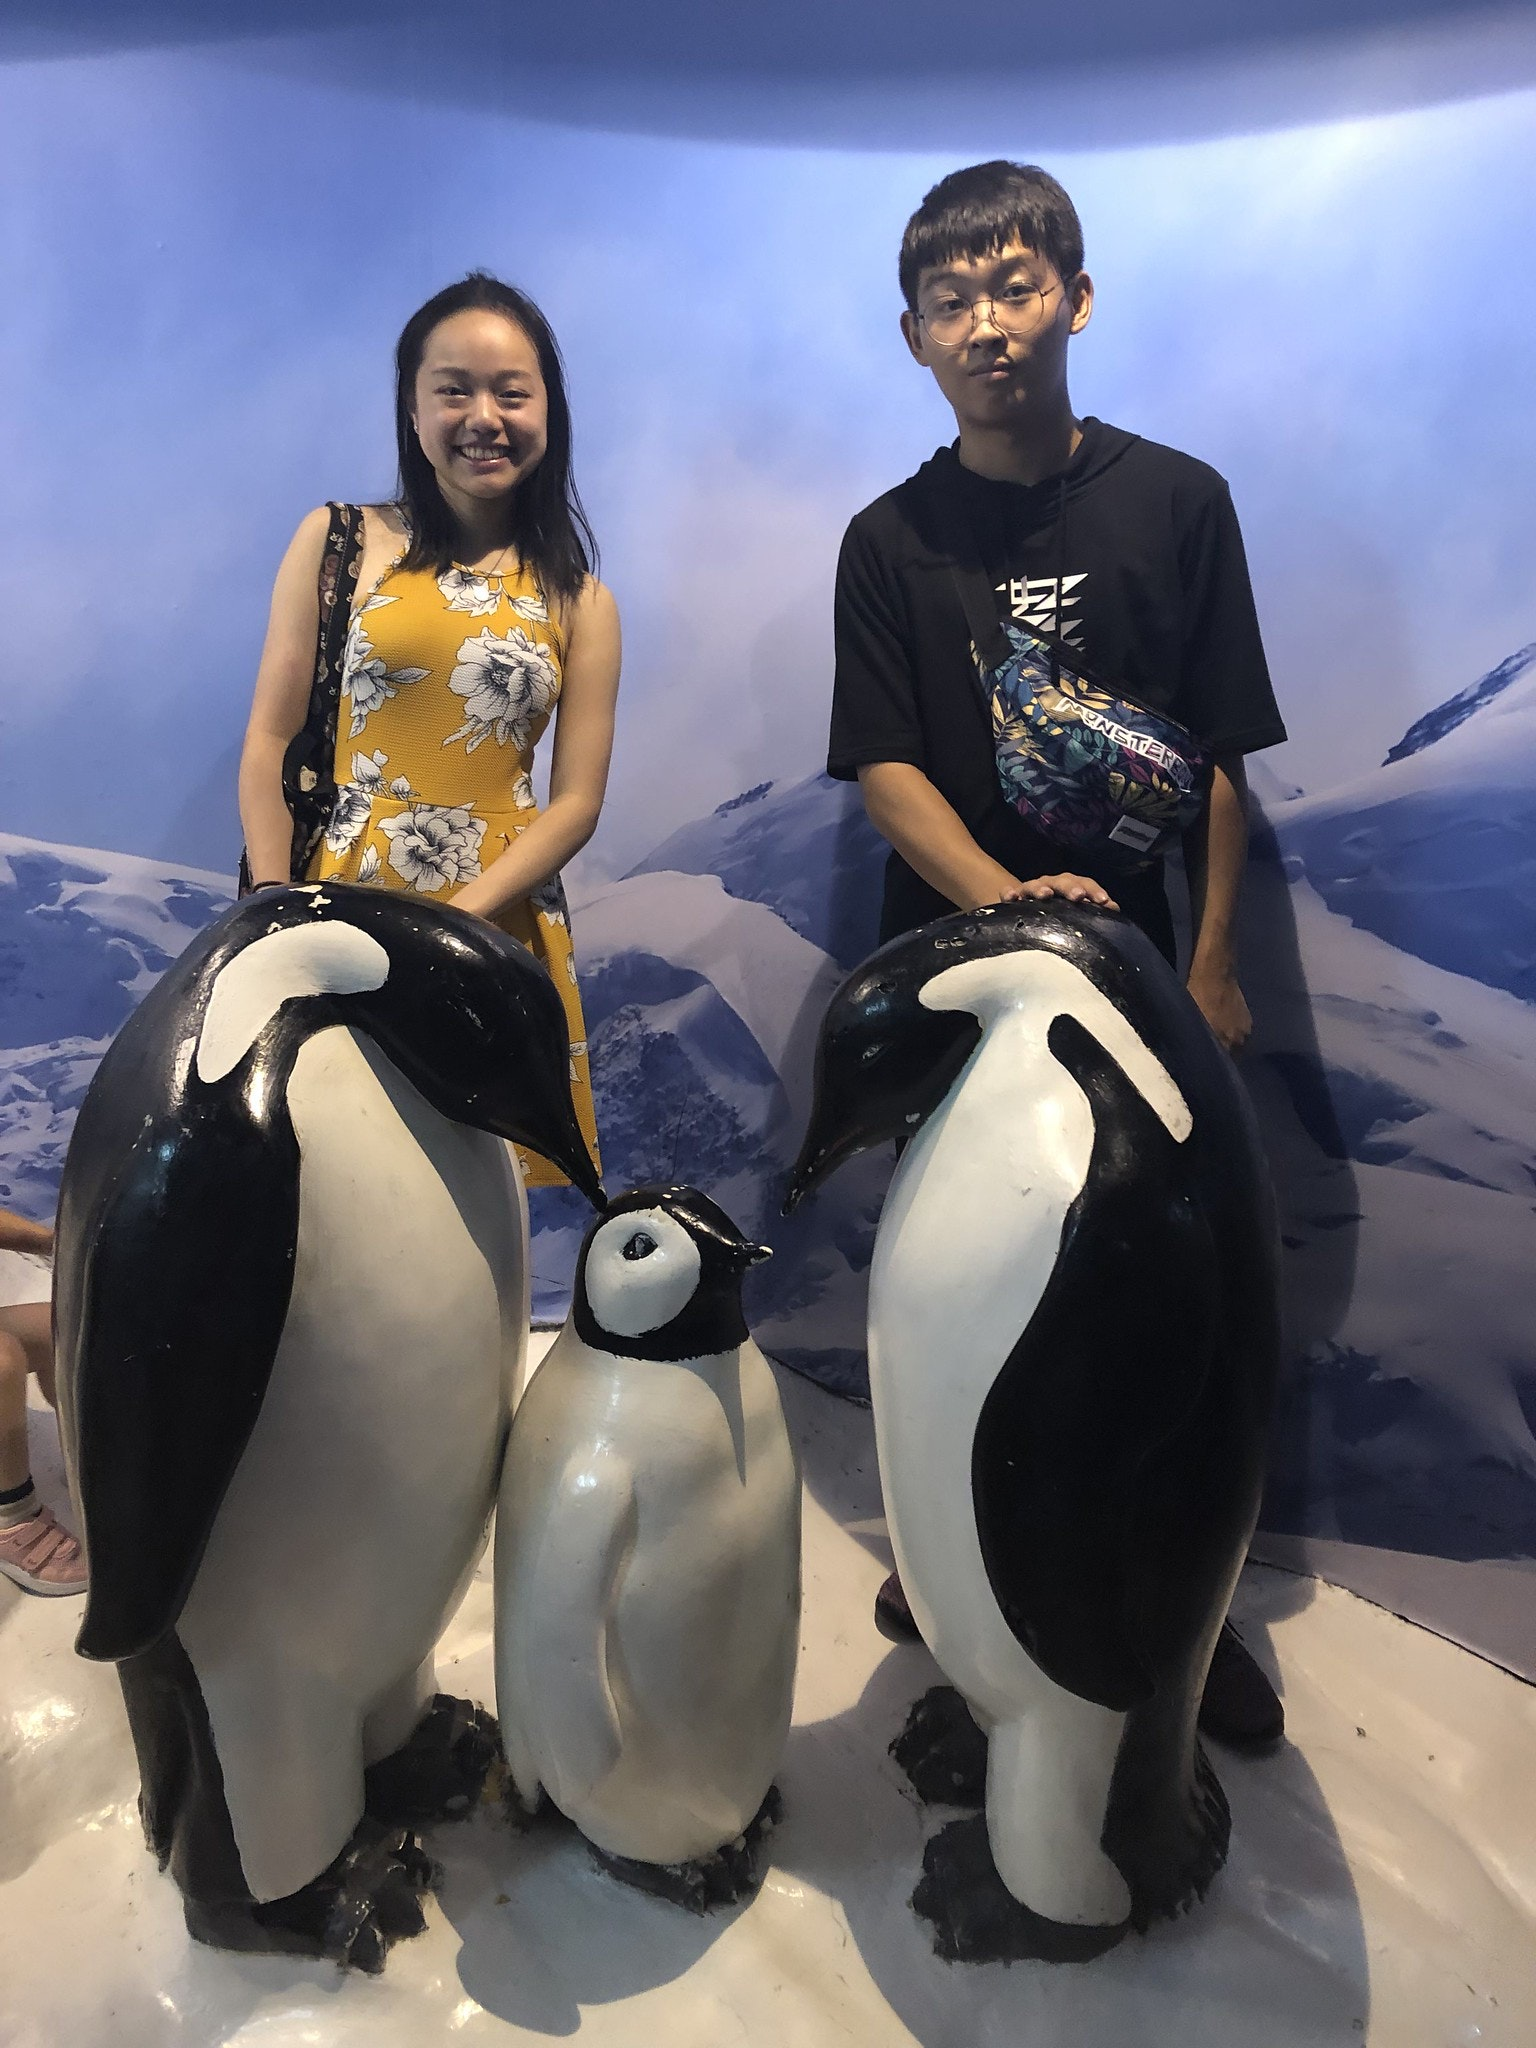 Vanessa Hu and cousin sitting on penguin sculptures at the Shanghai aquarium